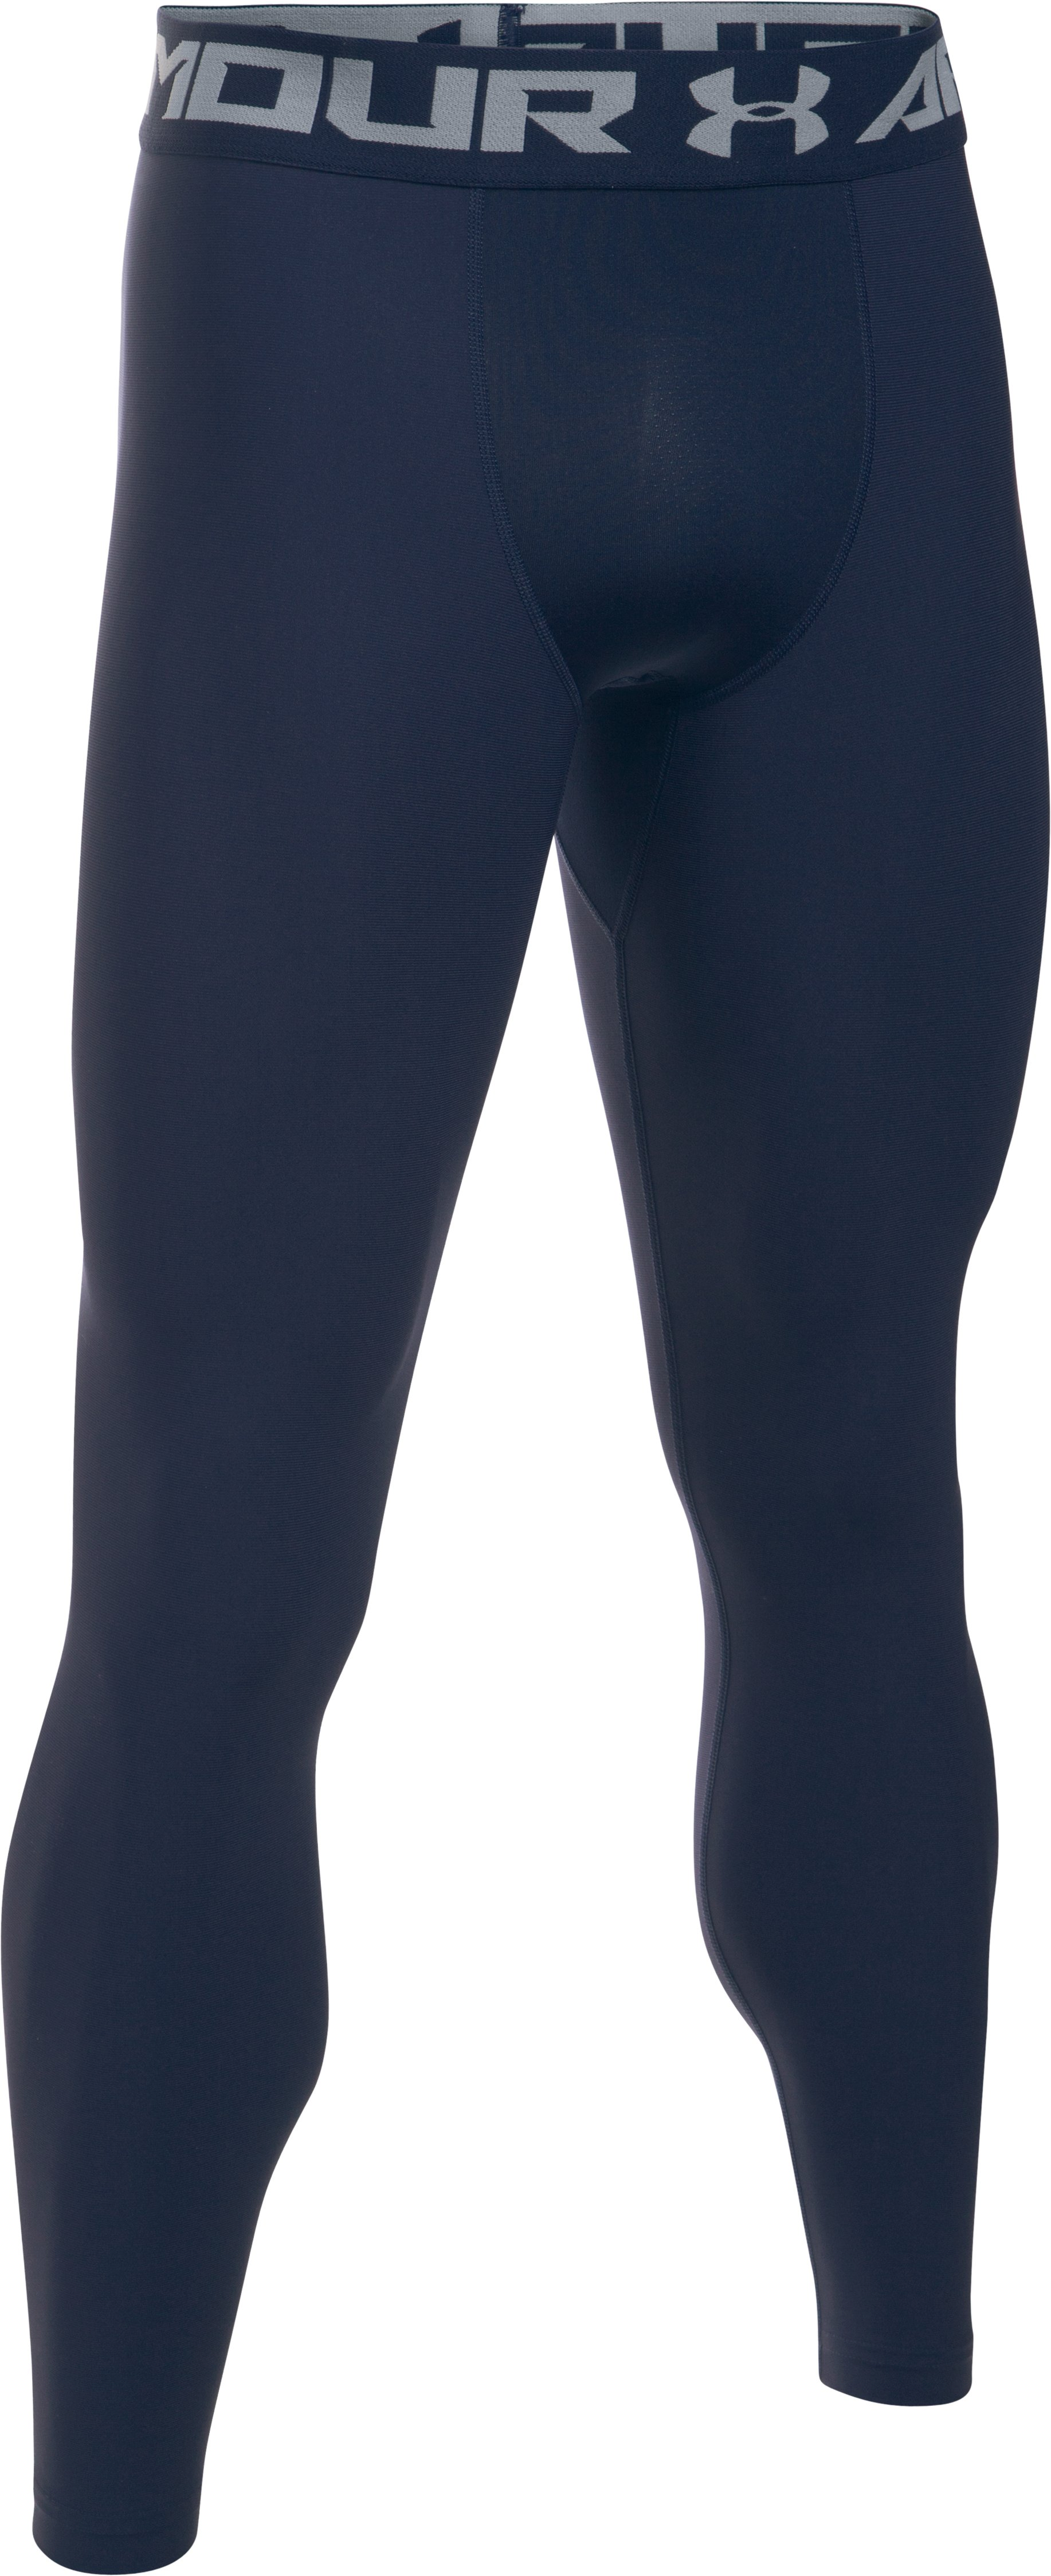 Men's HeatGear® Armour Compression Leggings, Midnight Navy, undefined